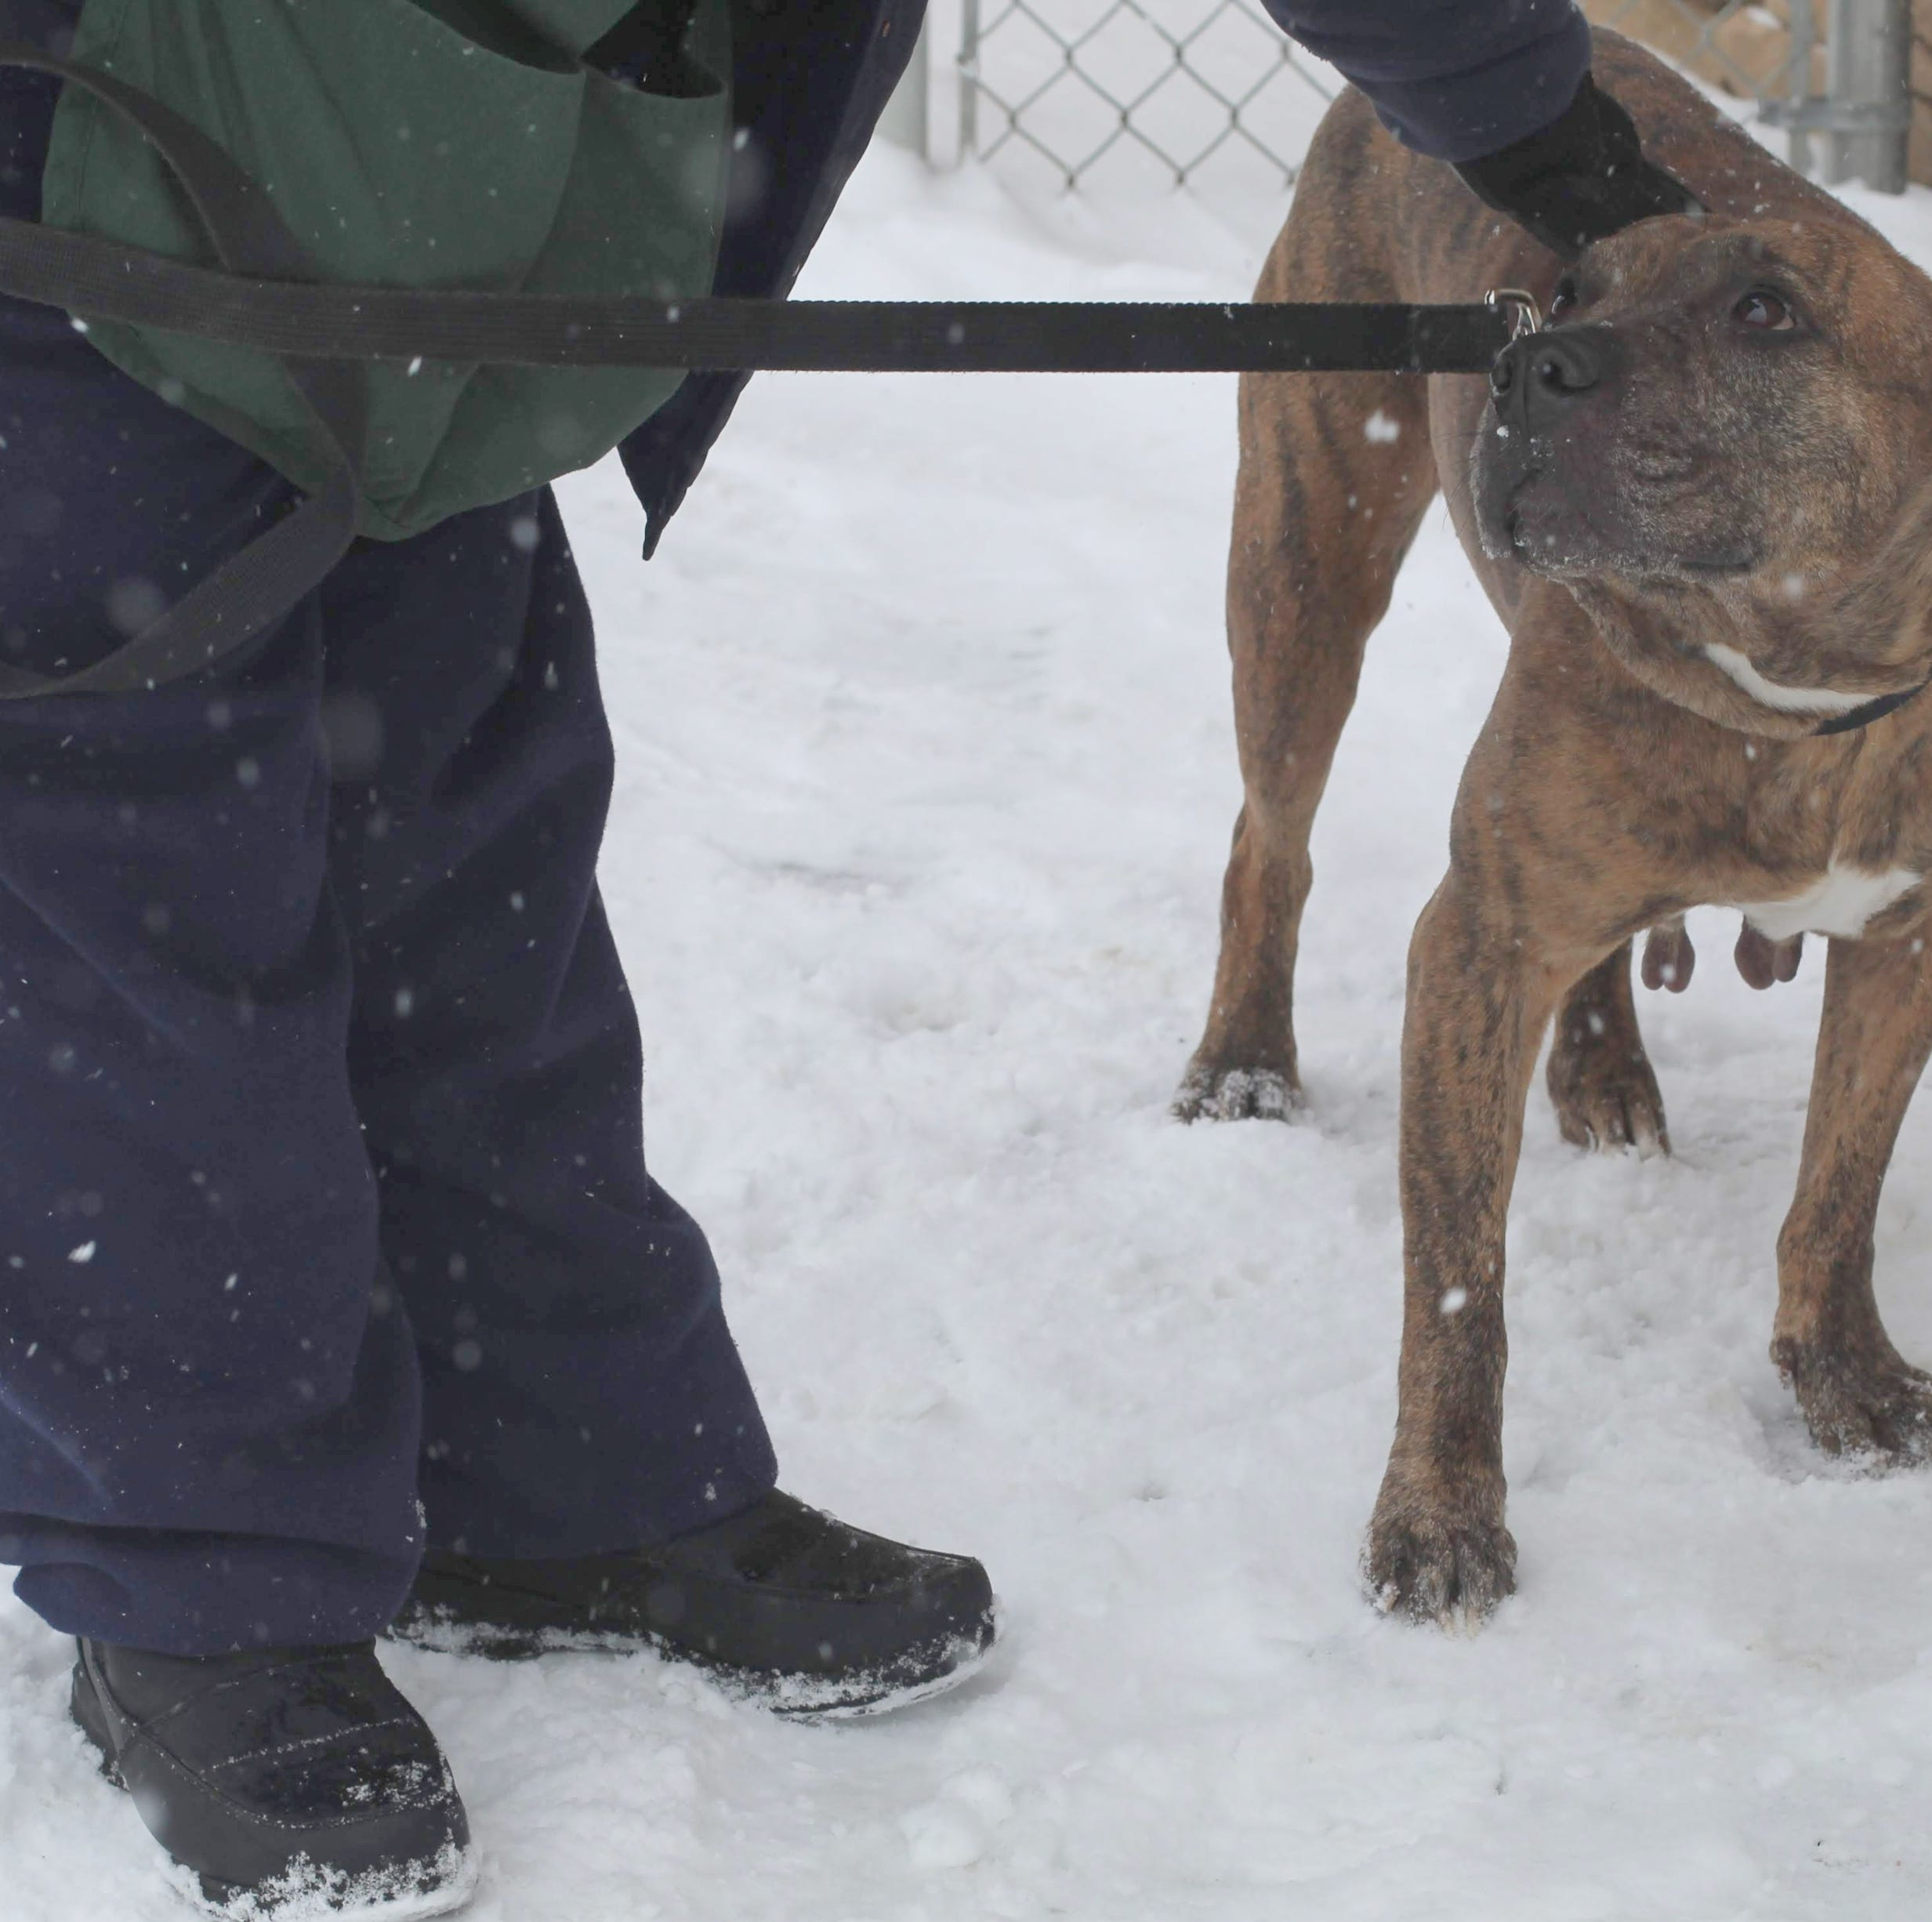 Not just a walk in the park: Volunteer dog walkers help during snowstorm at Lollypop Farm